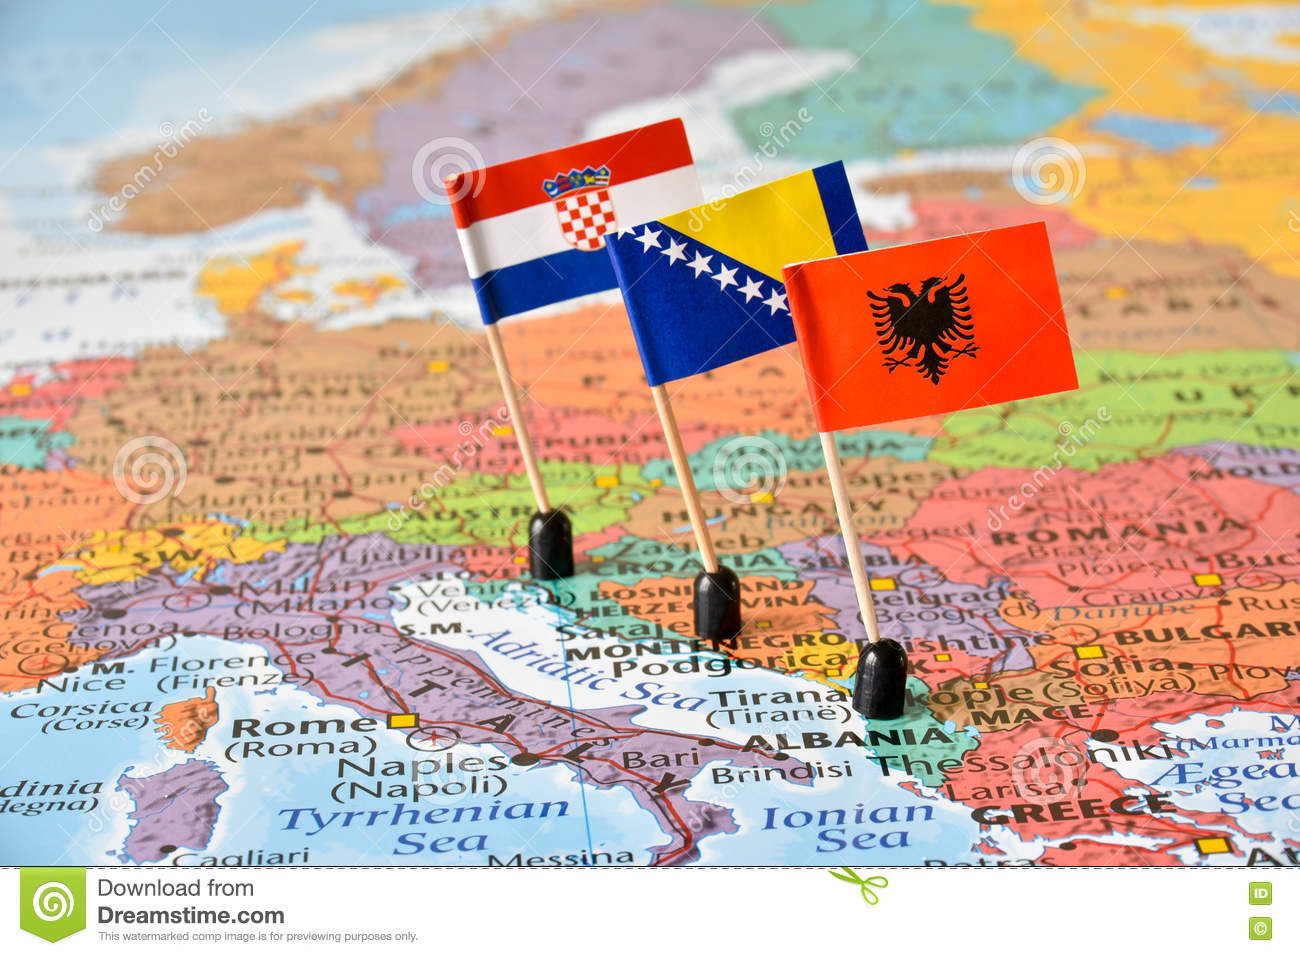 Balkans, Map And Flags Of Albania, Bosnia And Herzegovina, Croatia ...